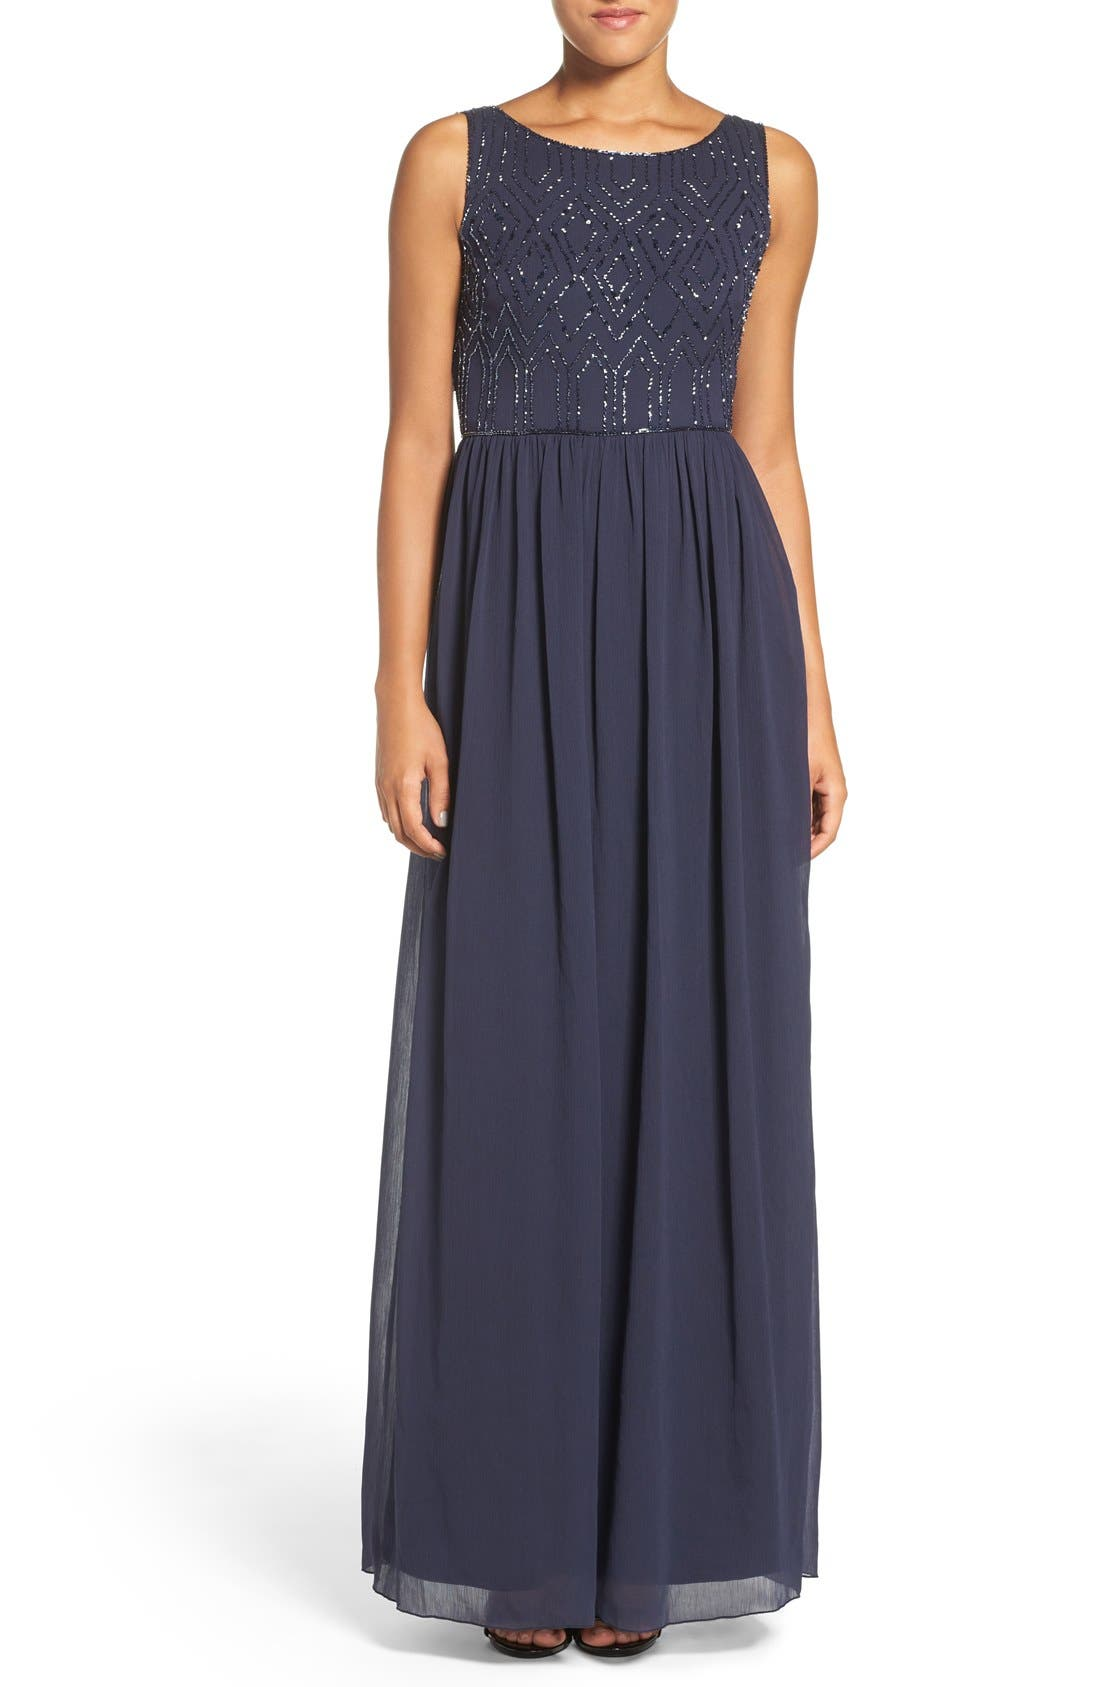 Alternate Image 1 Selected - Adrianna Papell Embellished Bodice Sleeveless Chiffon Gown